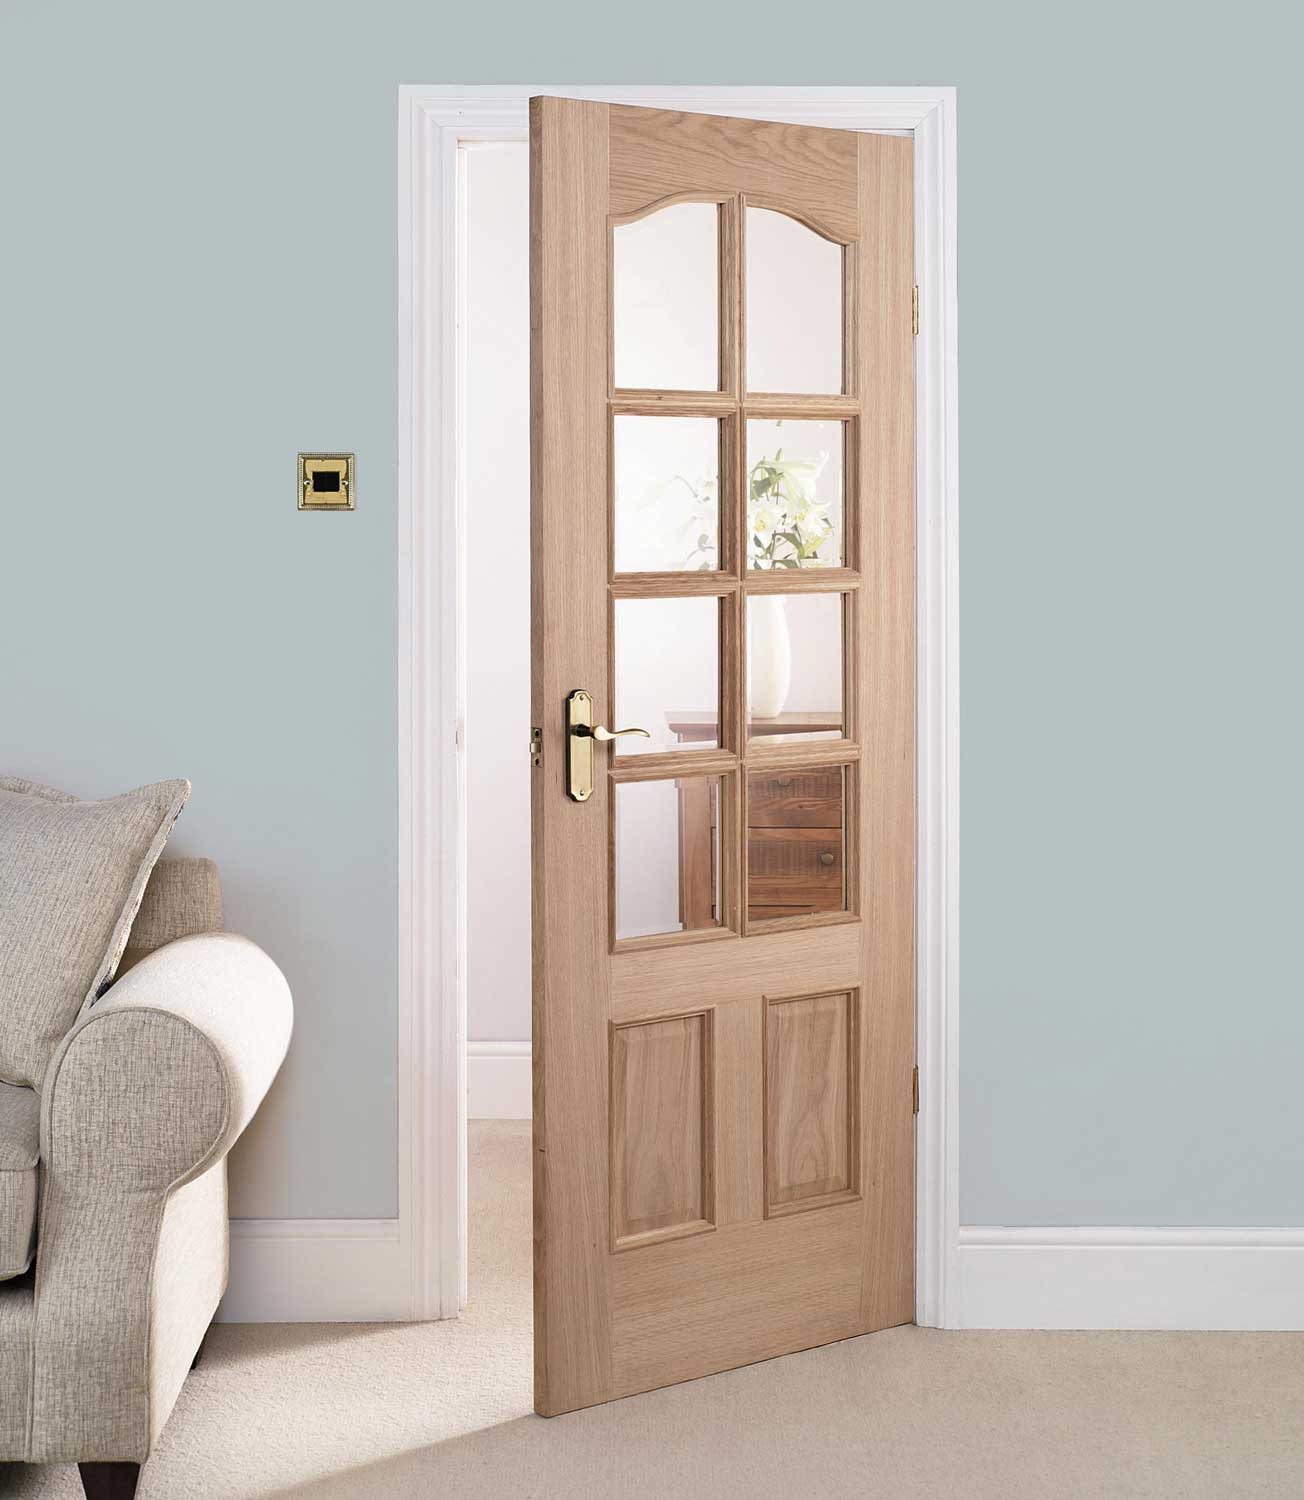 Merveilleux 30 X 80 Interior Door With Glass Are Chosen Often For Living Rooms In  Modern Style